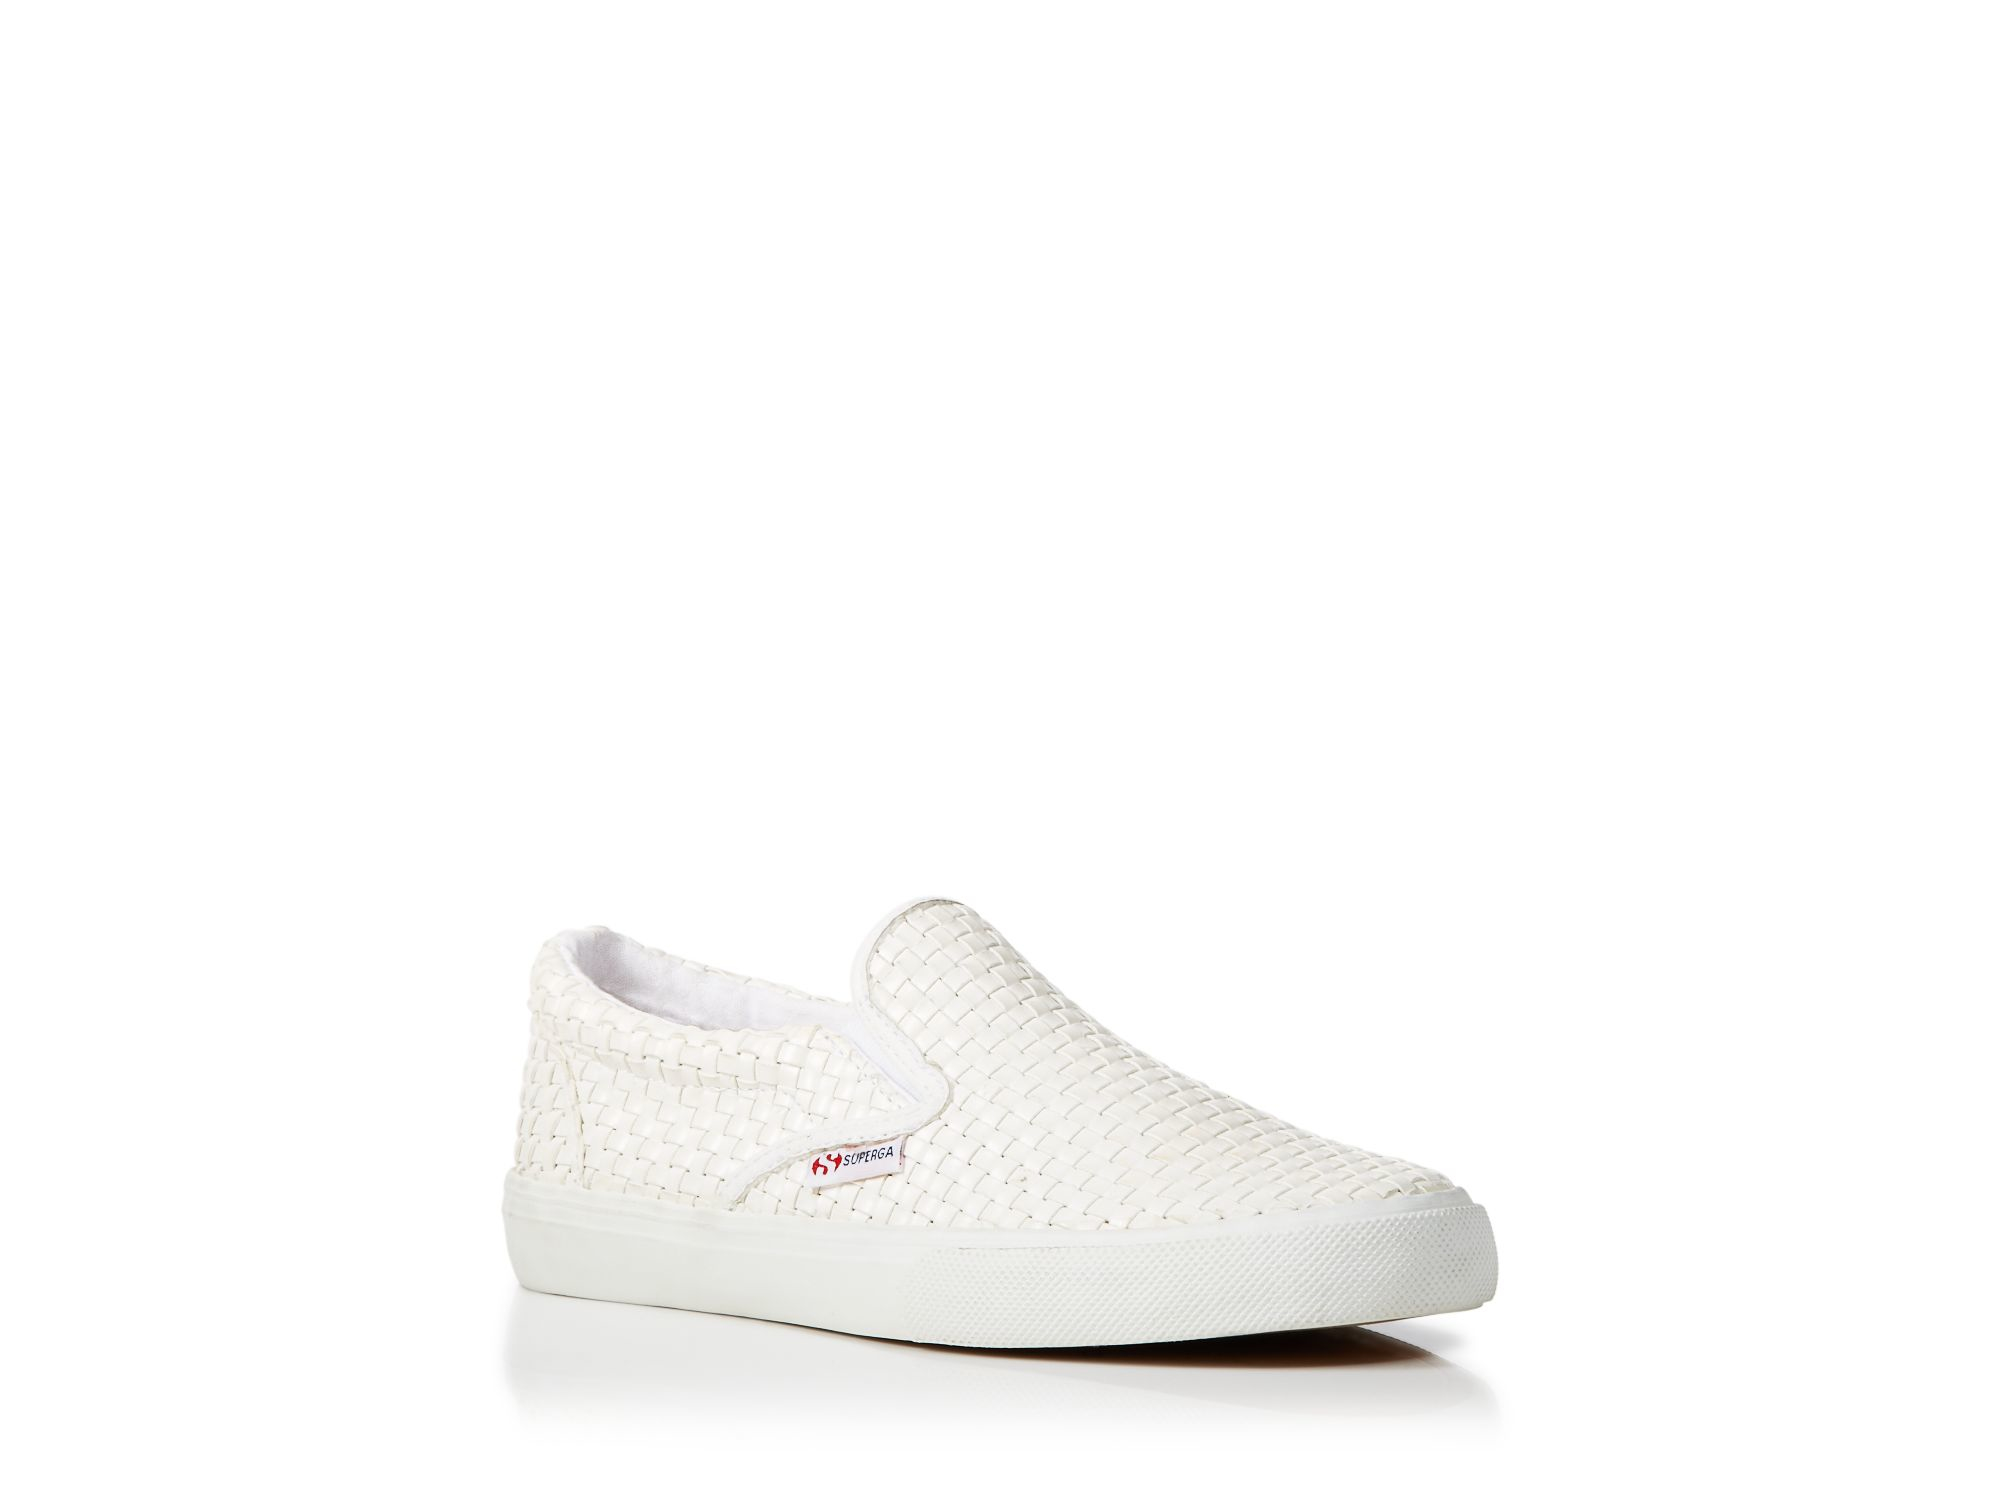 Lyst - Superga Slip On Sneakers - Woven Leather in White